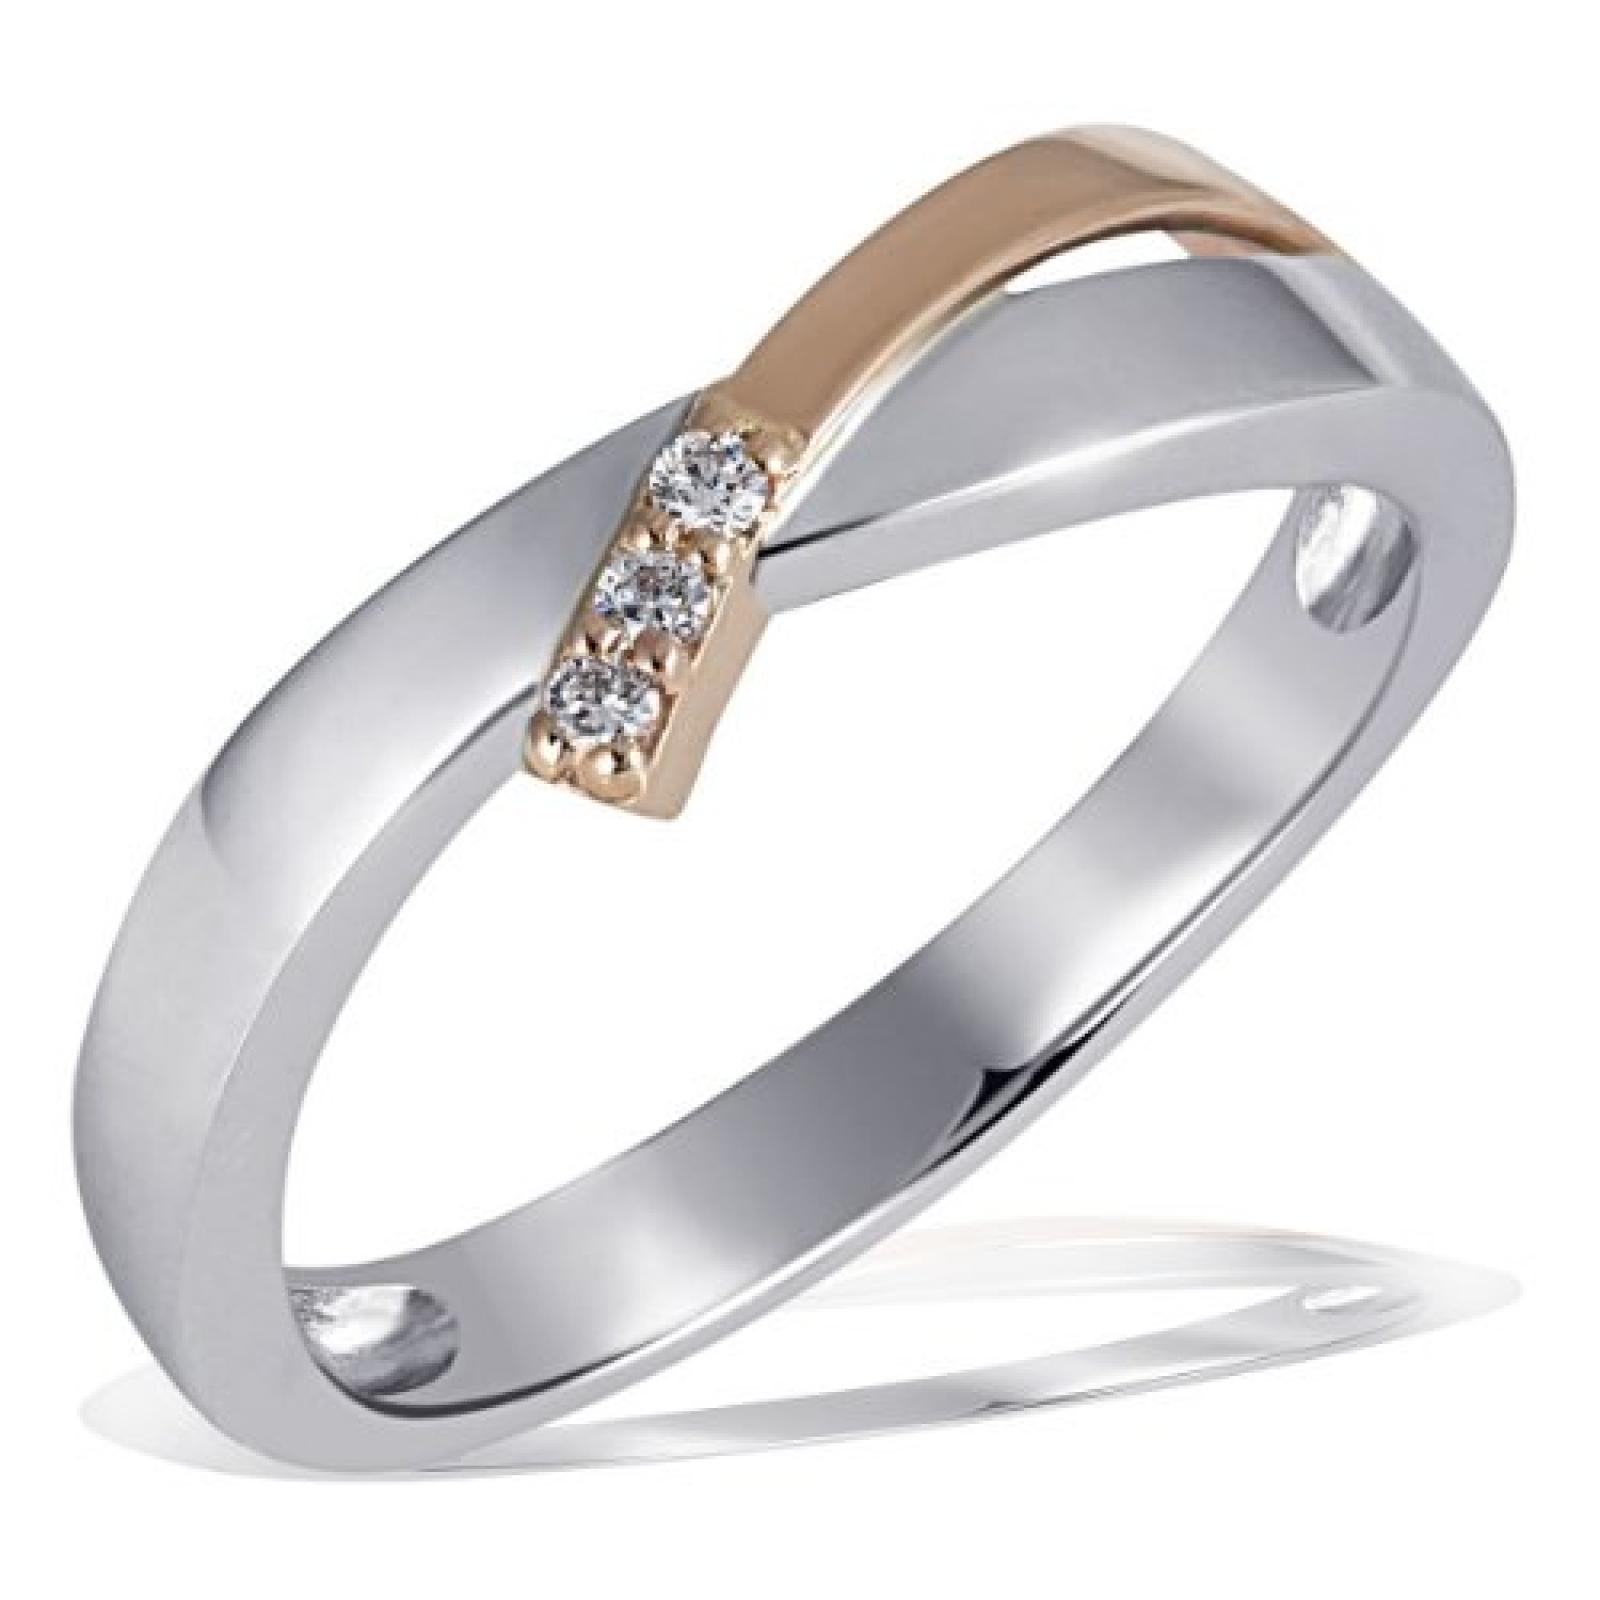 Goldmaid Damen-Ring Weissgold Rotgold 585 Bicolor 3 Brillanten 0,05ct Pa R4266RG